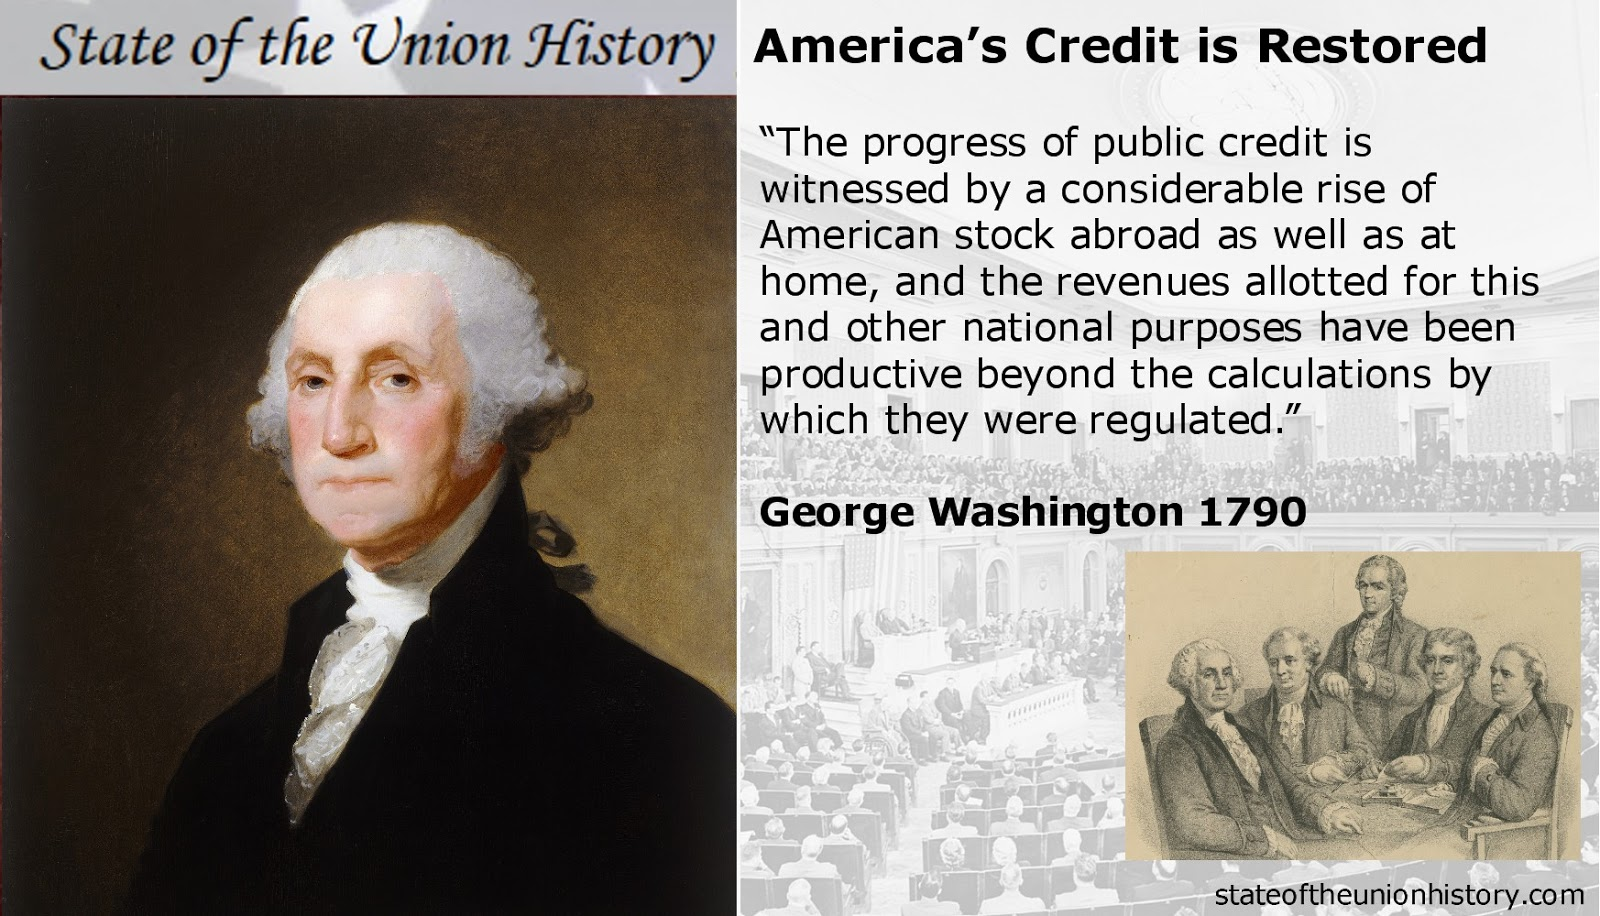 history of george washington George washington was a farmer, surveyor and soldier who, as commander in chief of the continental army, defeated the british in the revolutionary war and, as a private citizen, became the first.